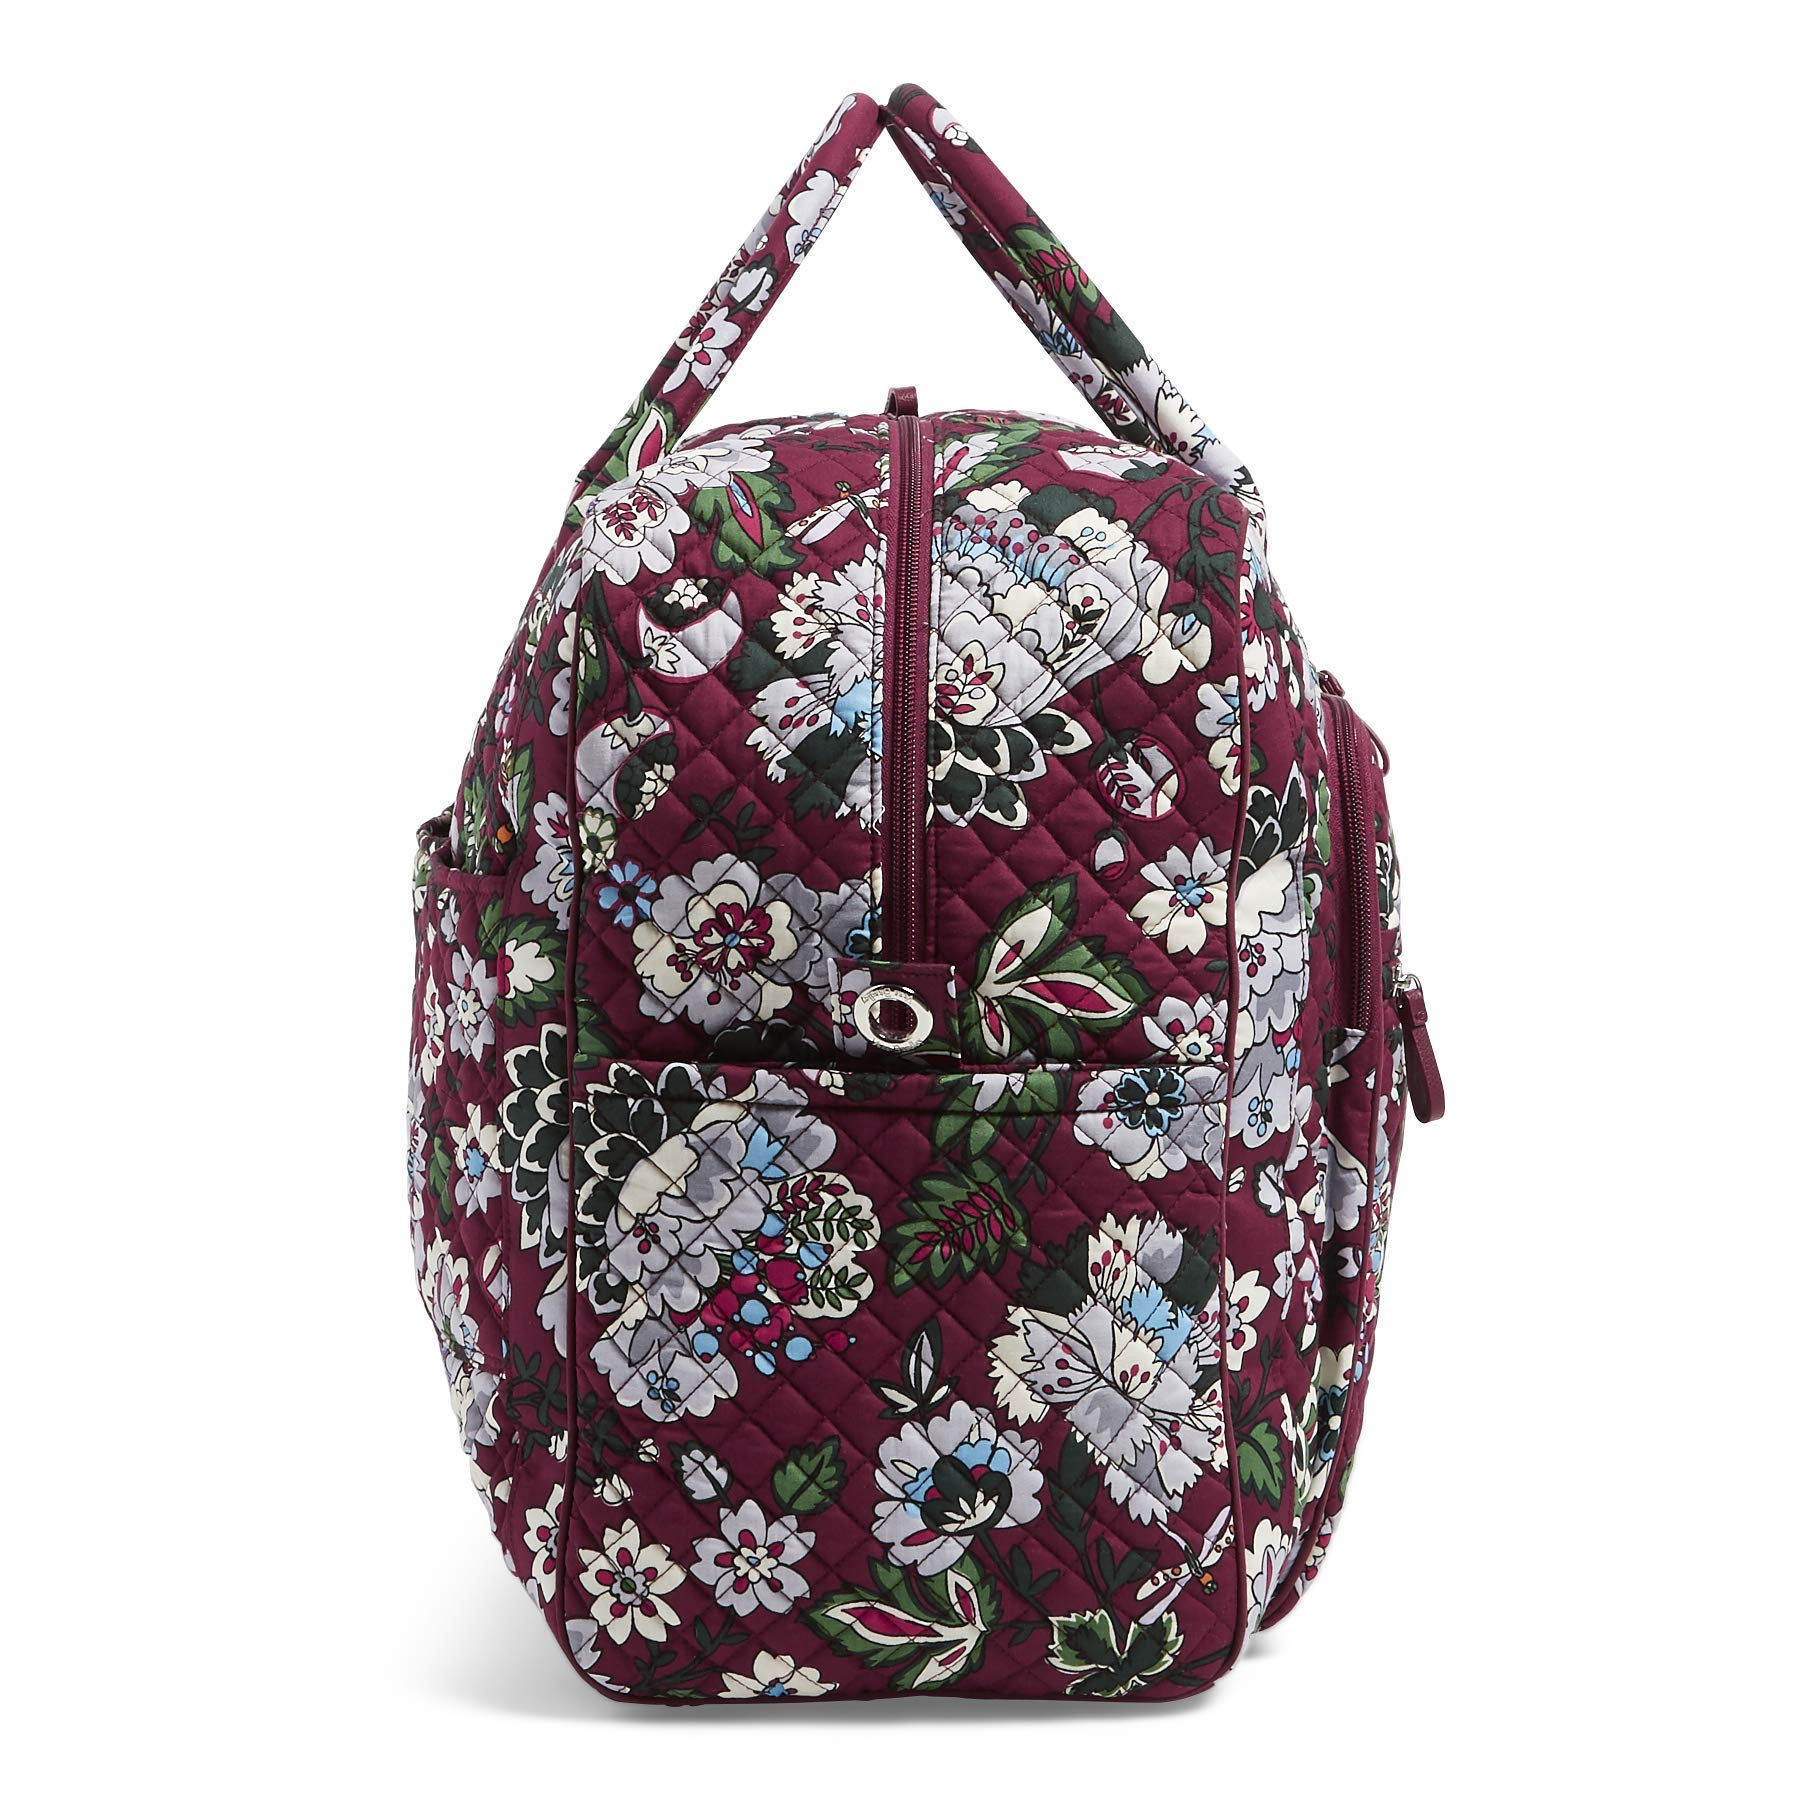 Vera Bradley Iconic Grand Weekender Travel Bag, Signature Cotton, bordeaux blooms by Vera Bradley (Image #4)